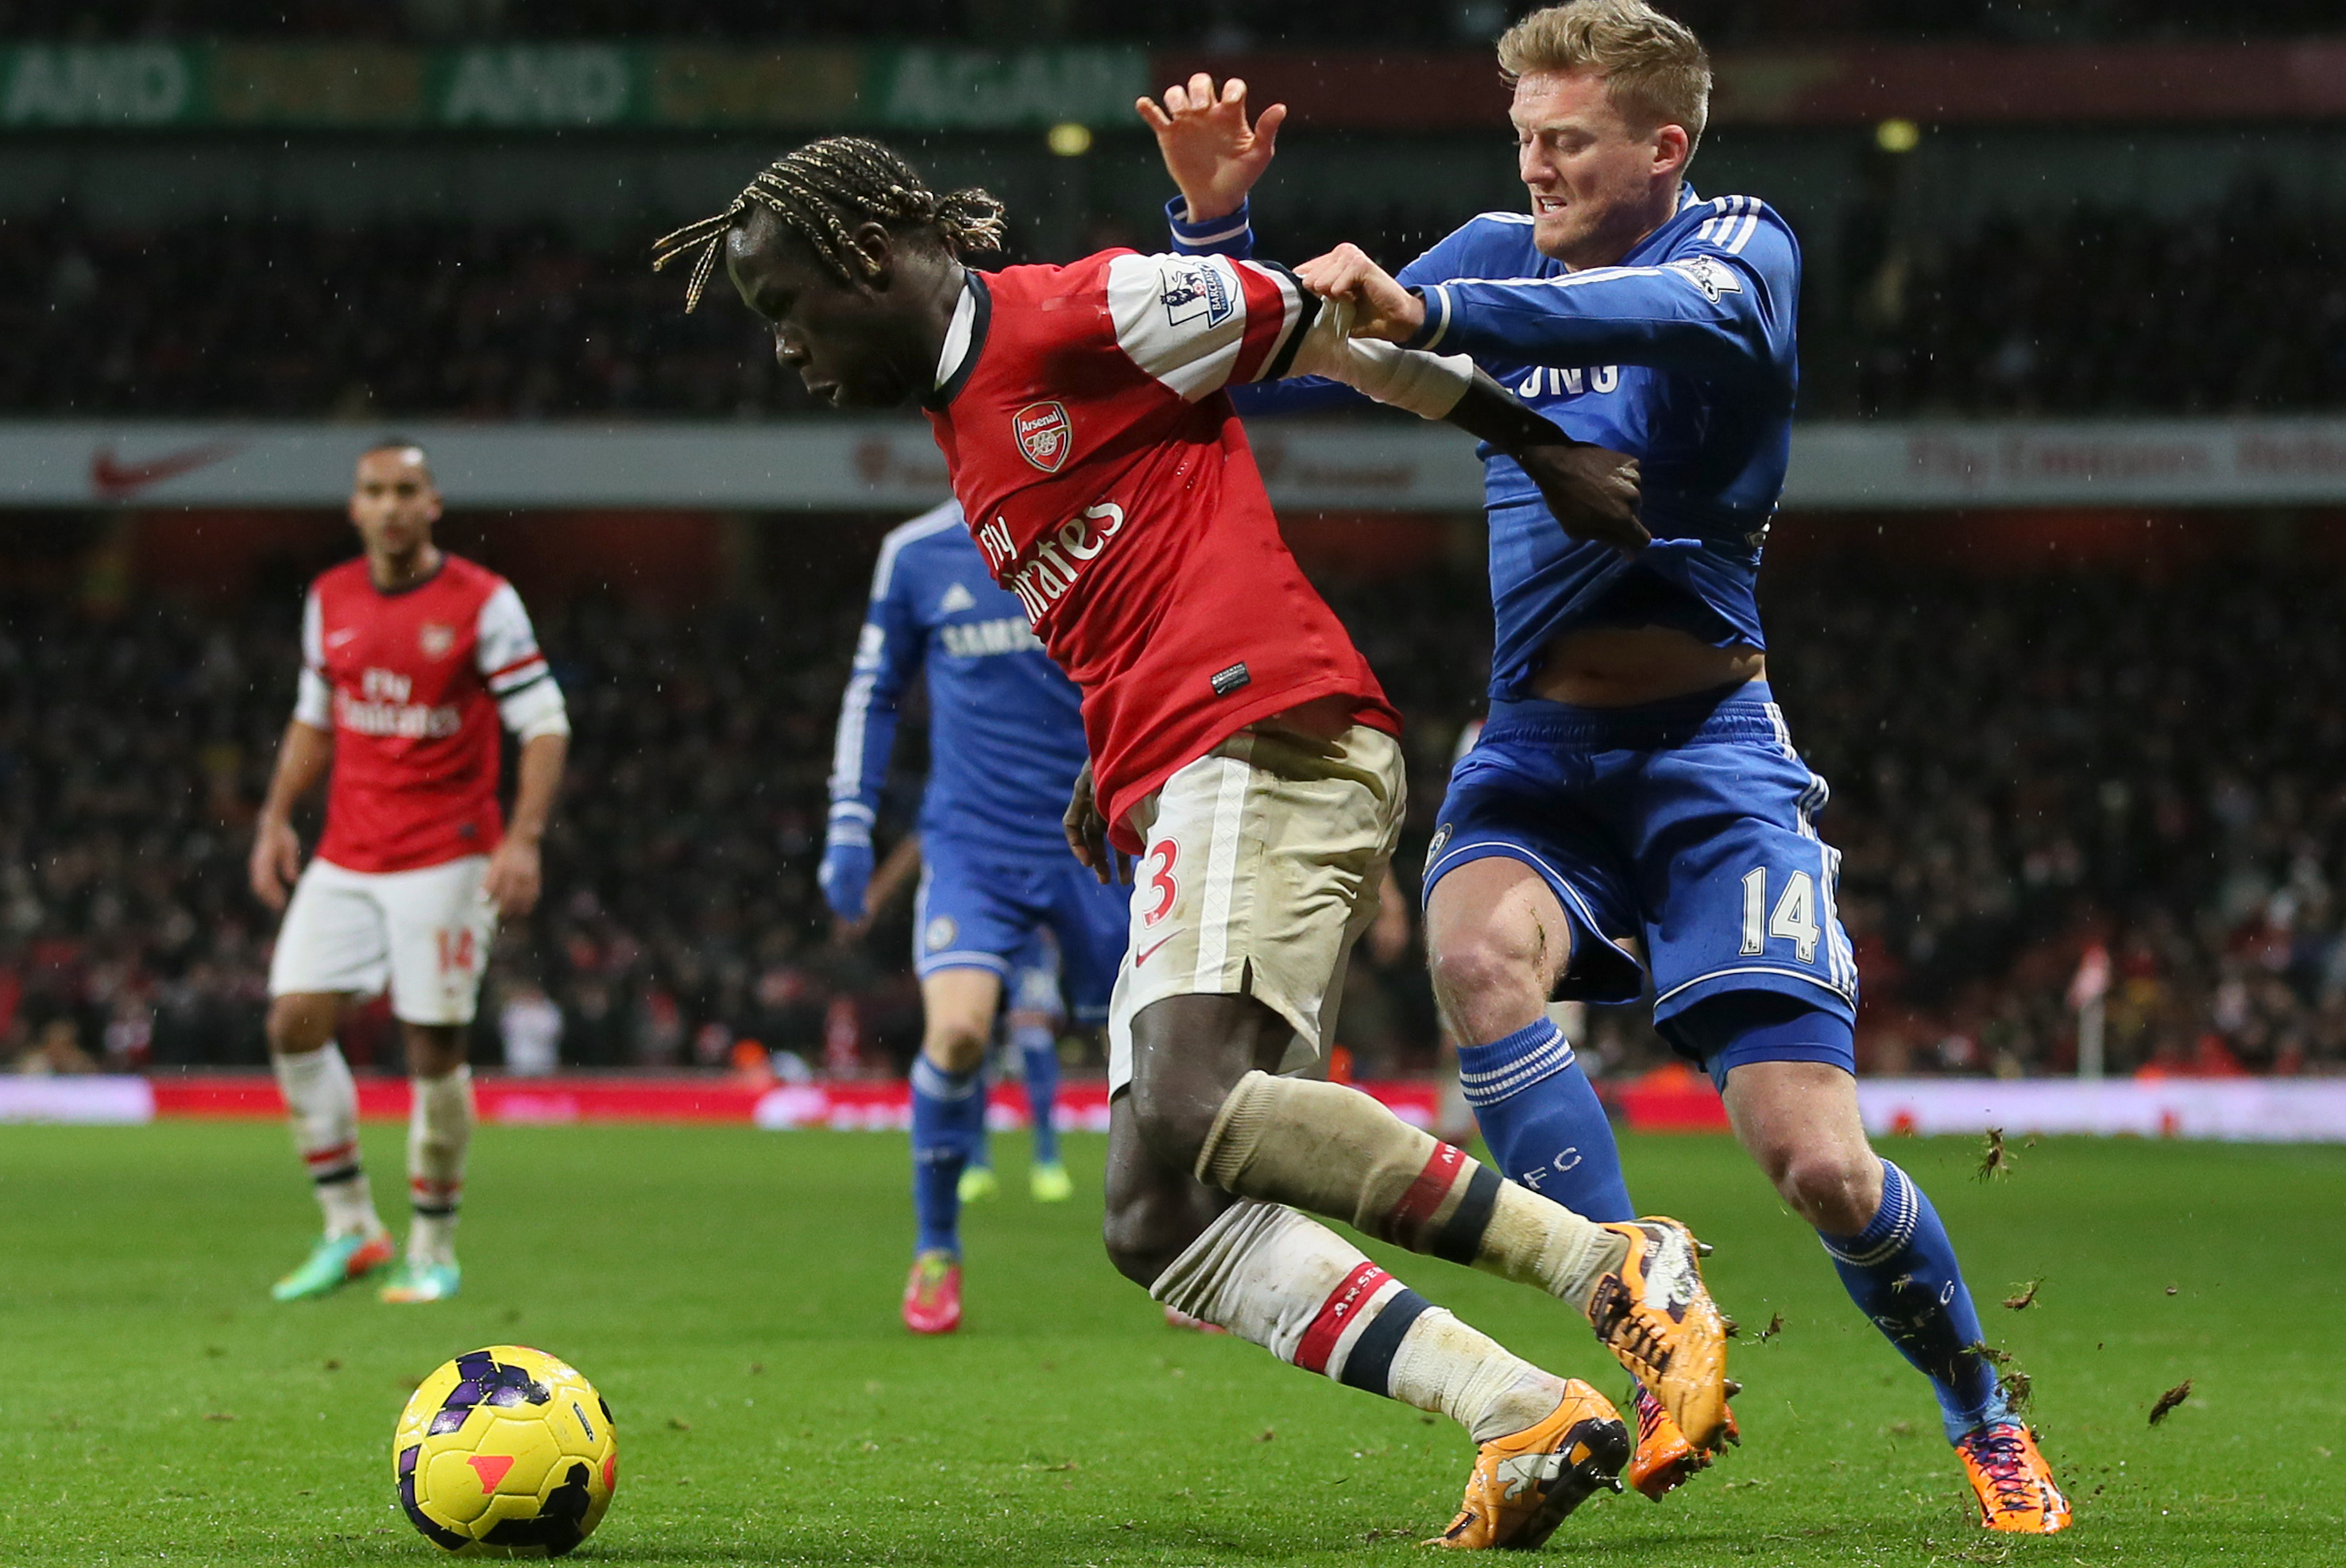 Arsenal chelsea betting preview goal premier sports betting results on preakness